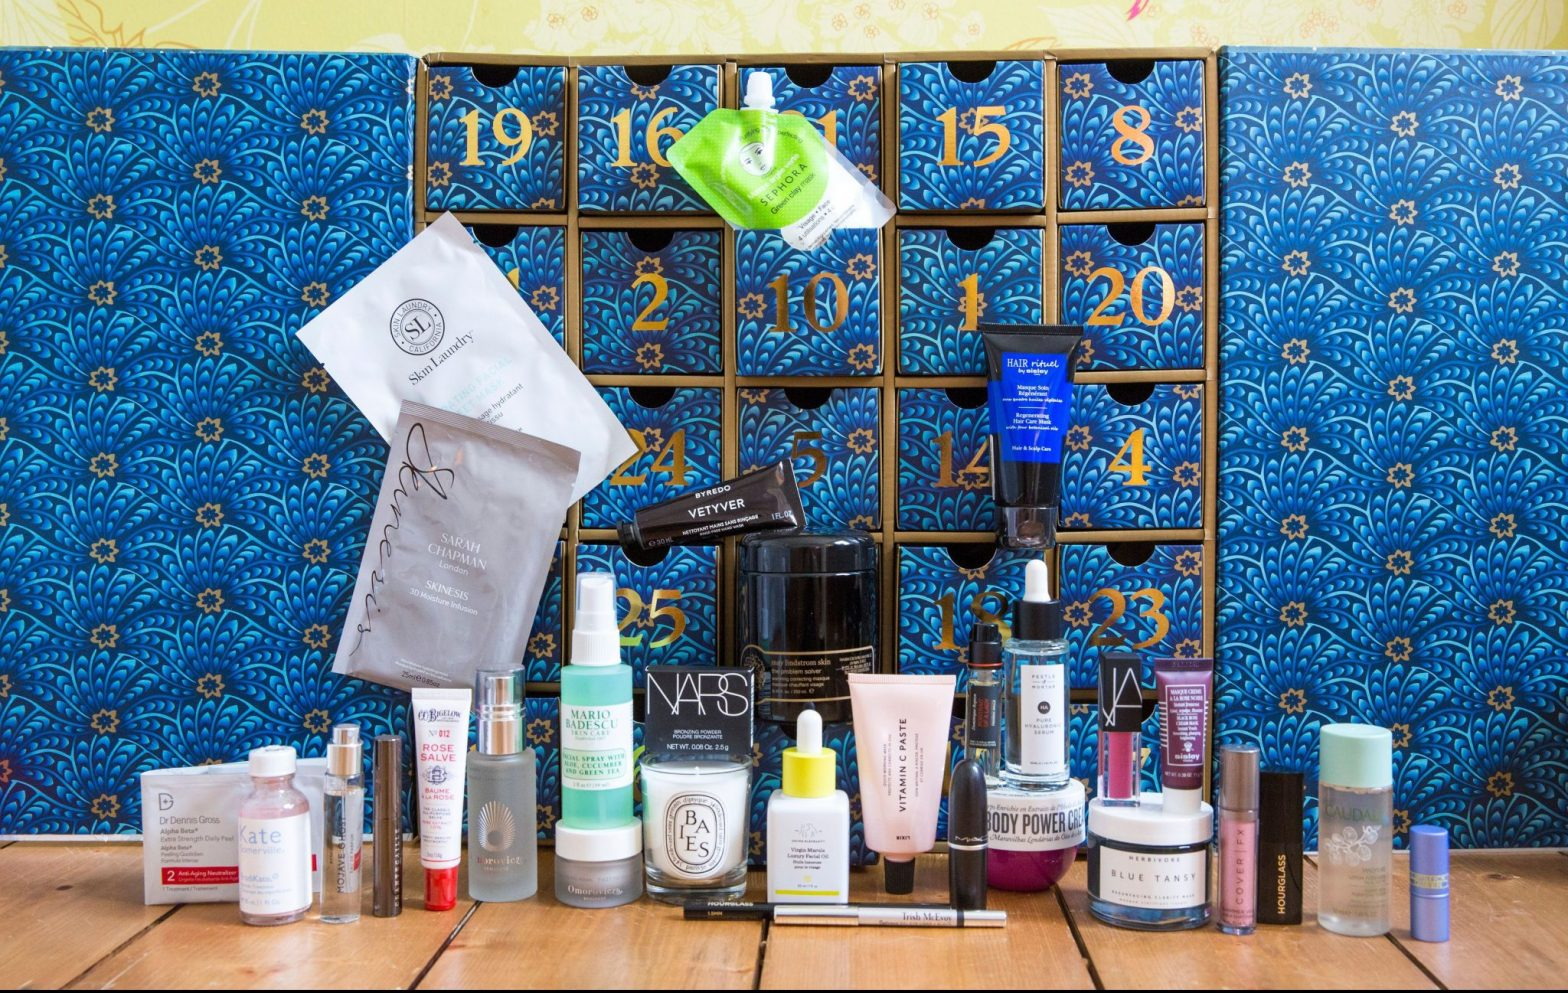 Liberty Beauty calendar with all the products lined up ready to be filled